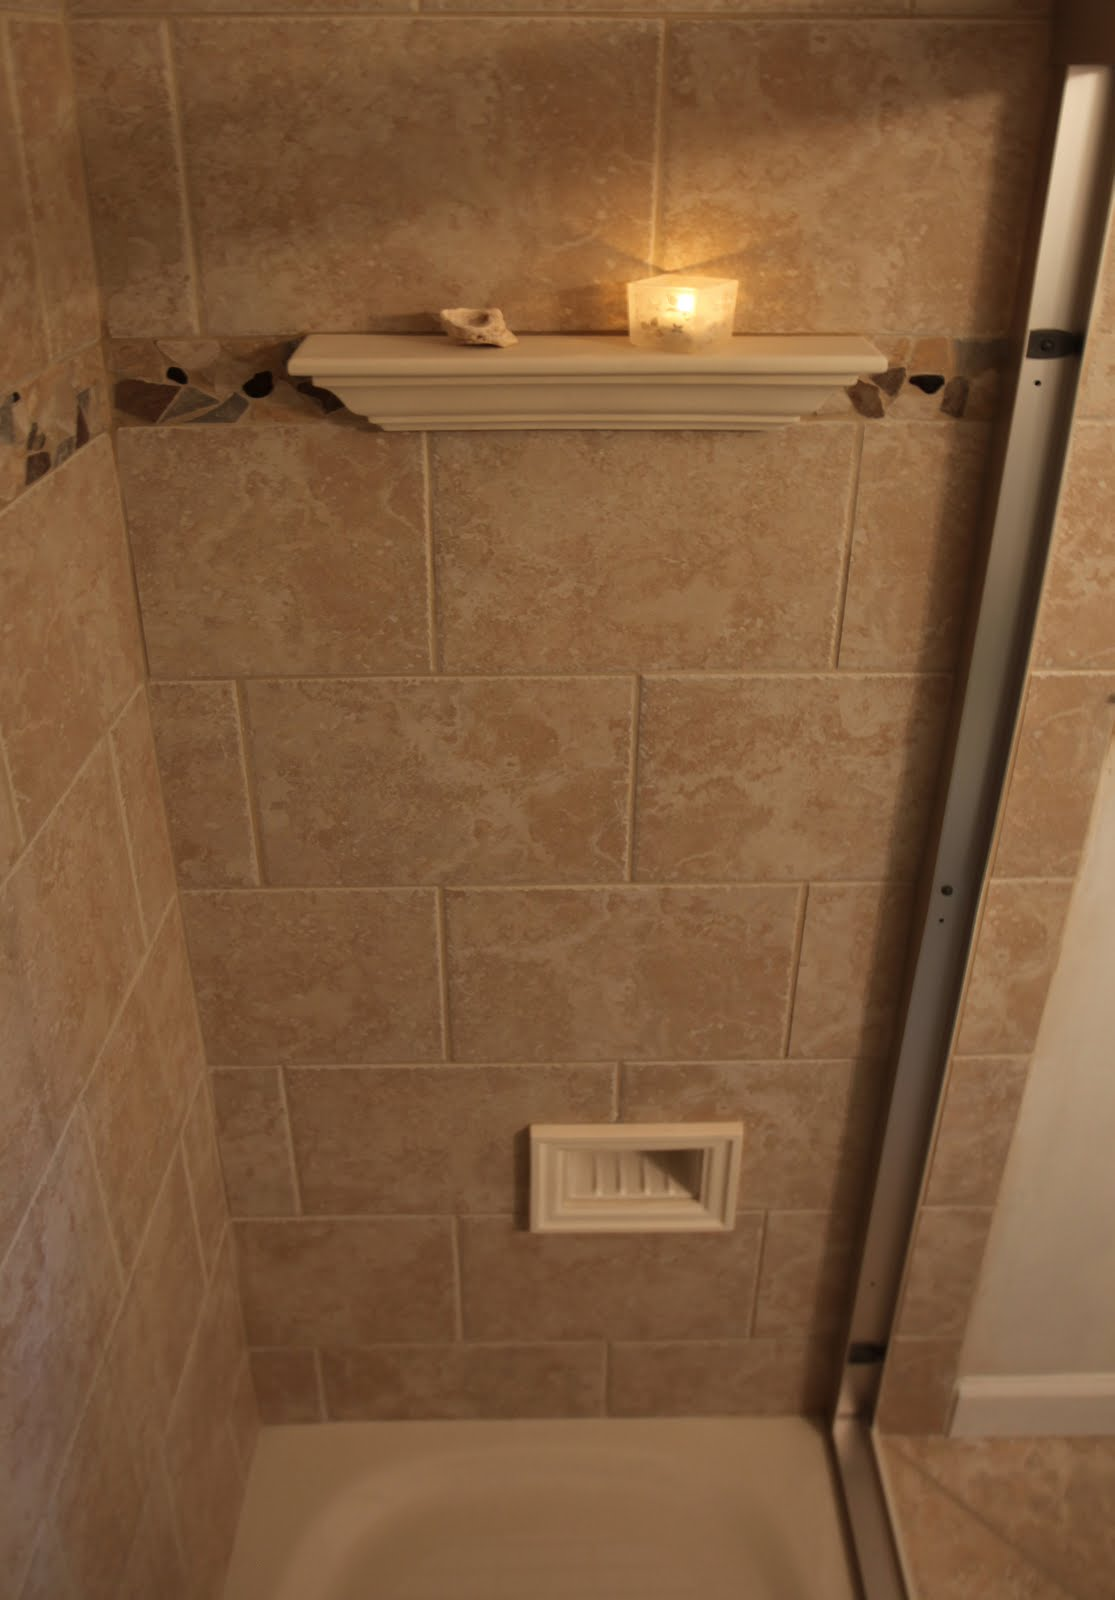 Bathroom Remodeling Design Ideas Tile Shower Niches Architectural Niches Crown And Shower Foot